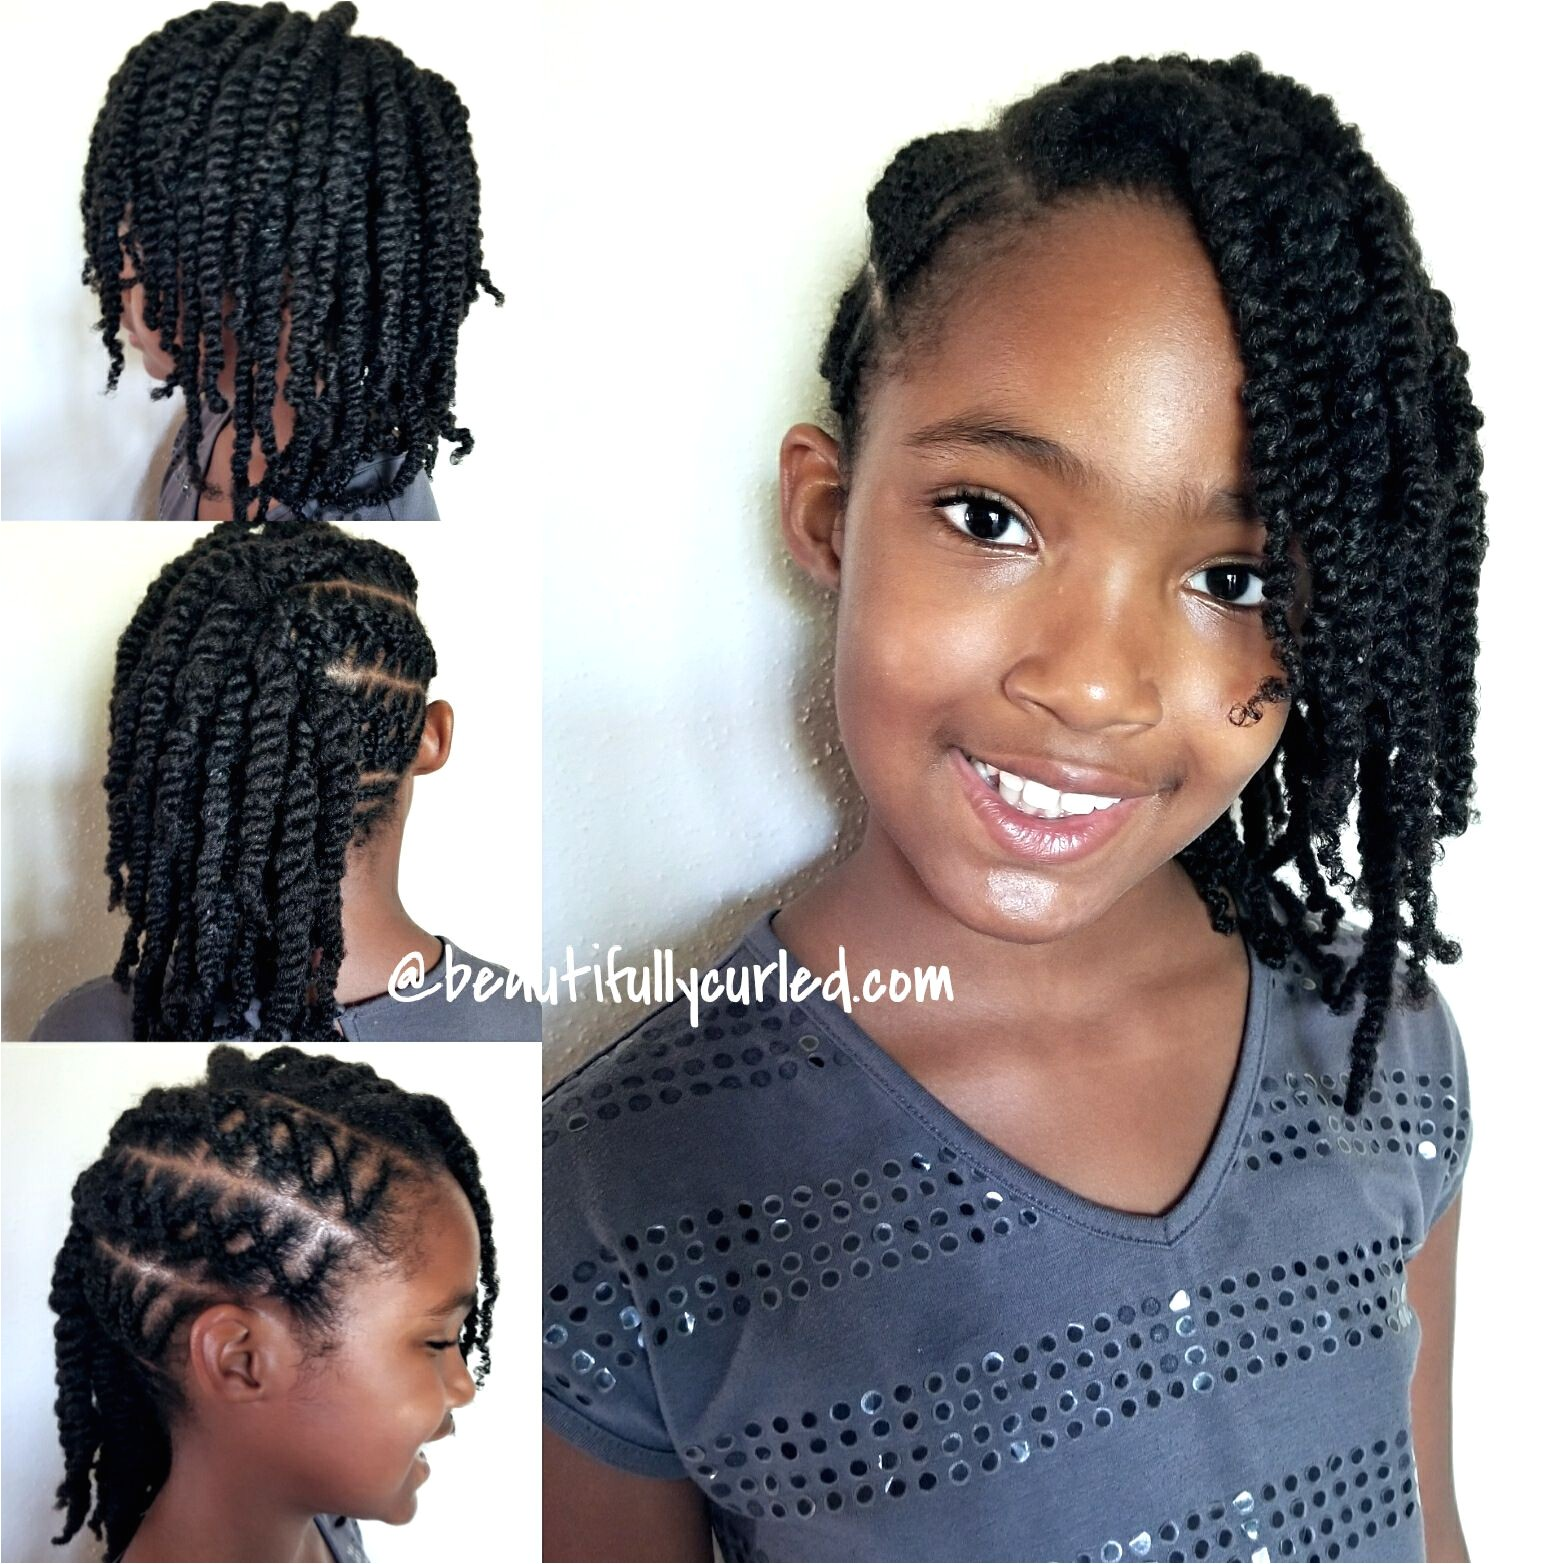 Natural Cornrow Hairstyles for Black Women Criss Cross Cornrow Braids with Side Twists First attempt